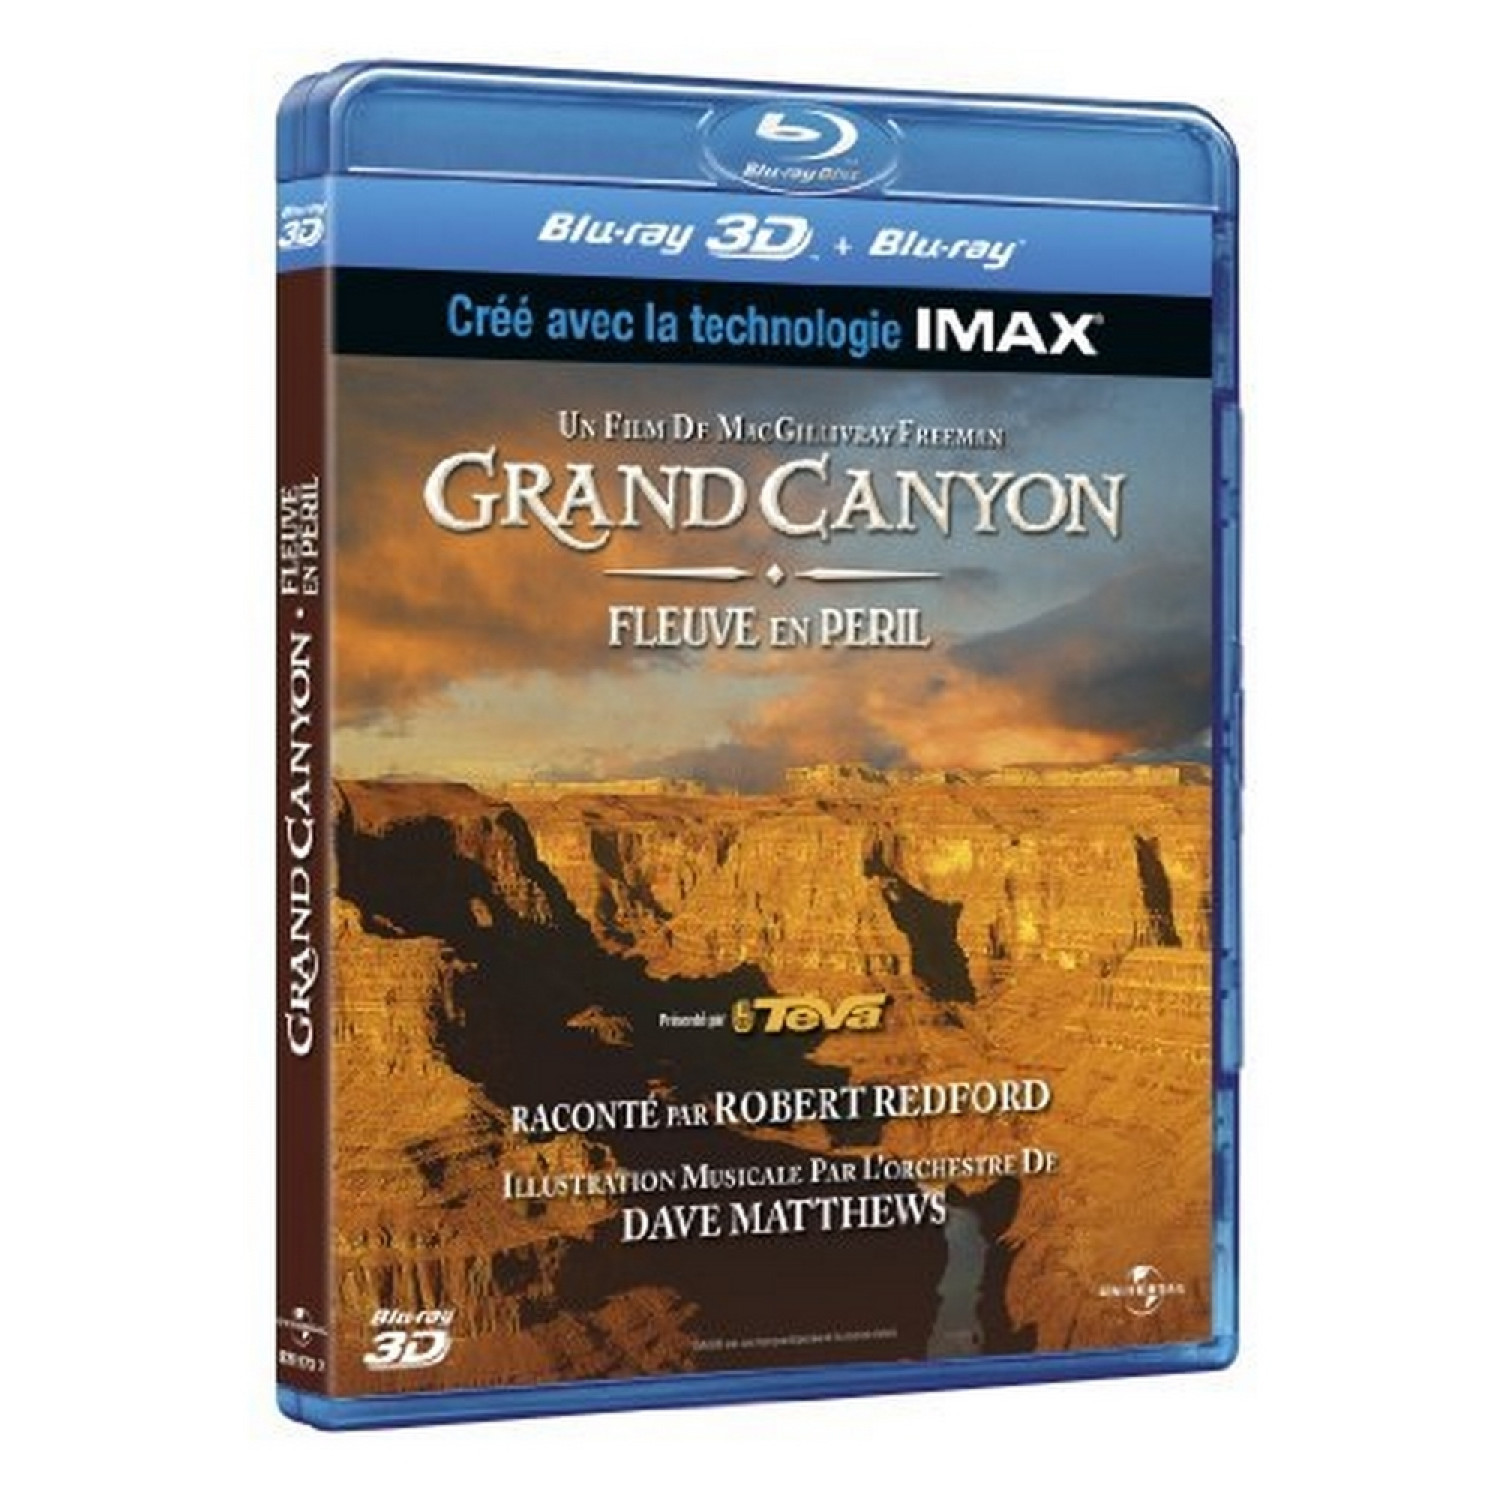 Grand Canyon 3d Active [blu-ray 3d]